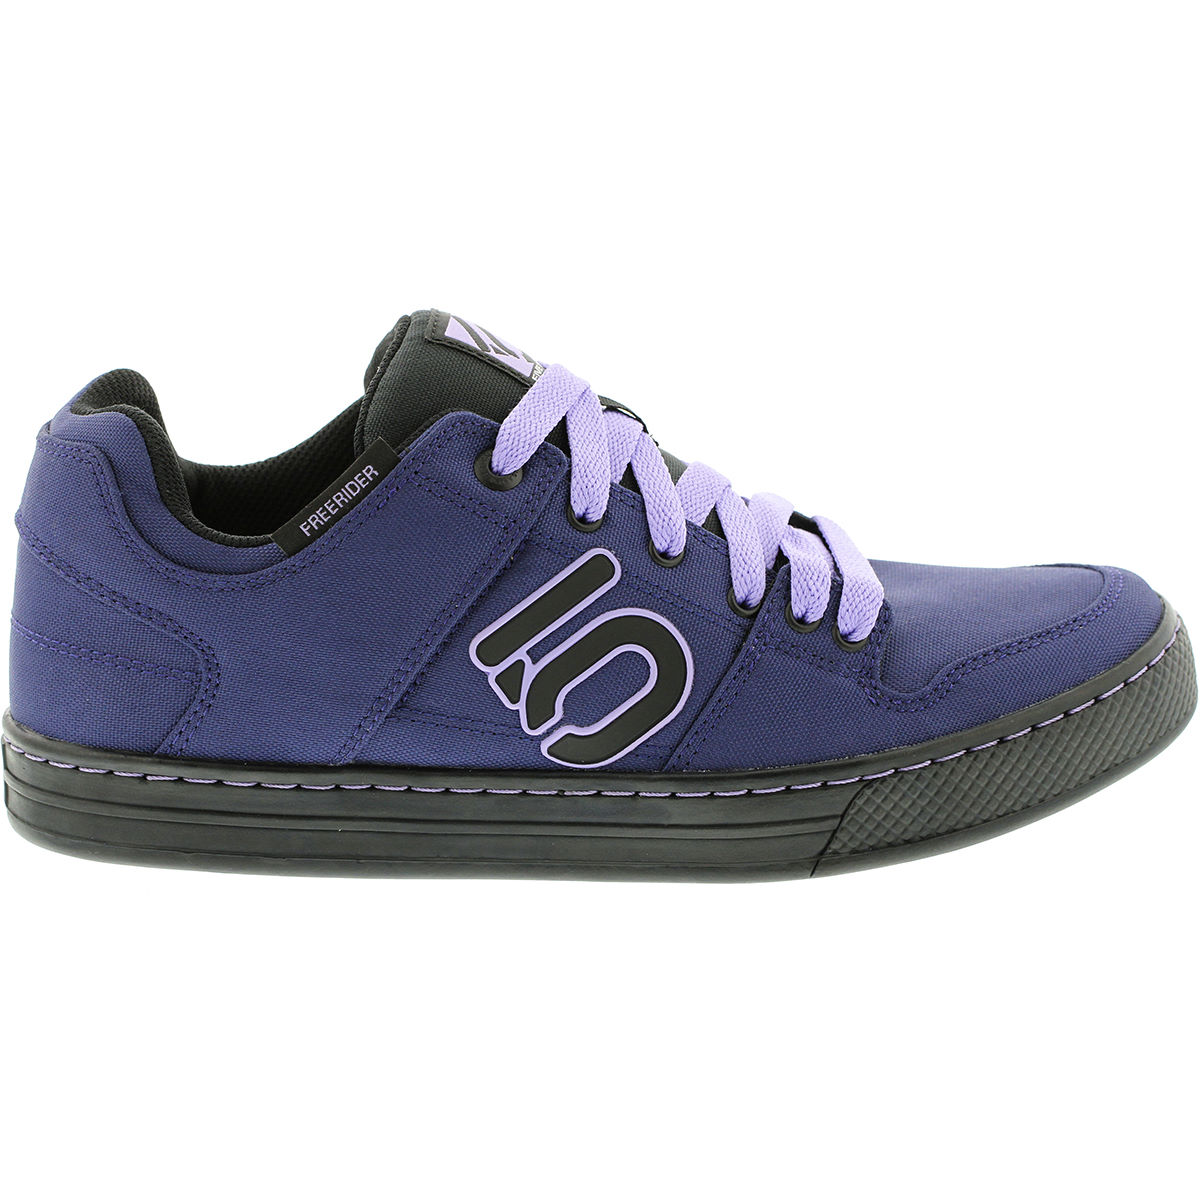 Chaussures VTT Femme Five Ten Freerider Canvas - EU 43 Indigo